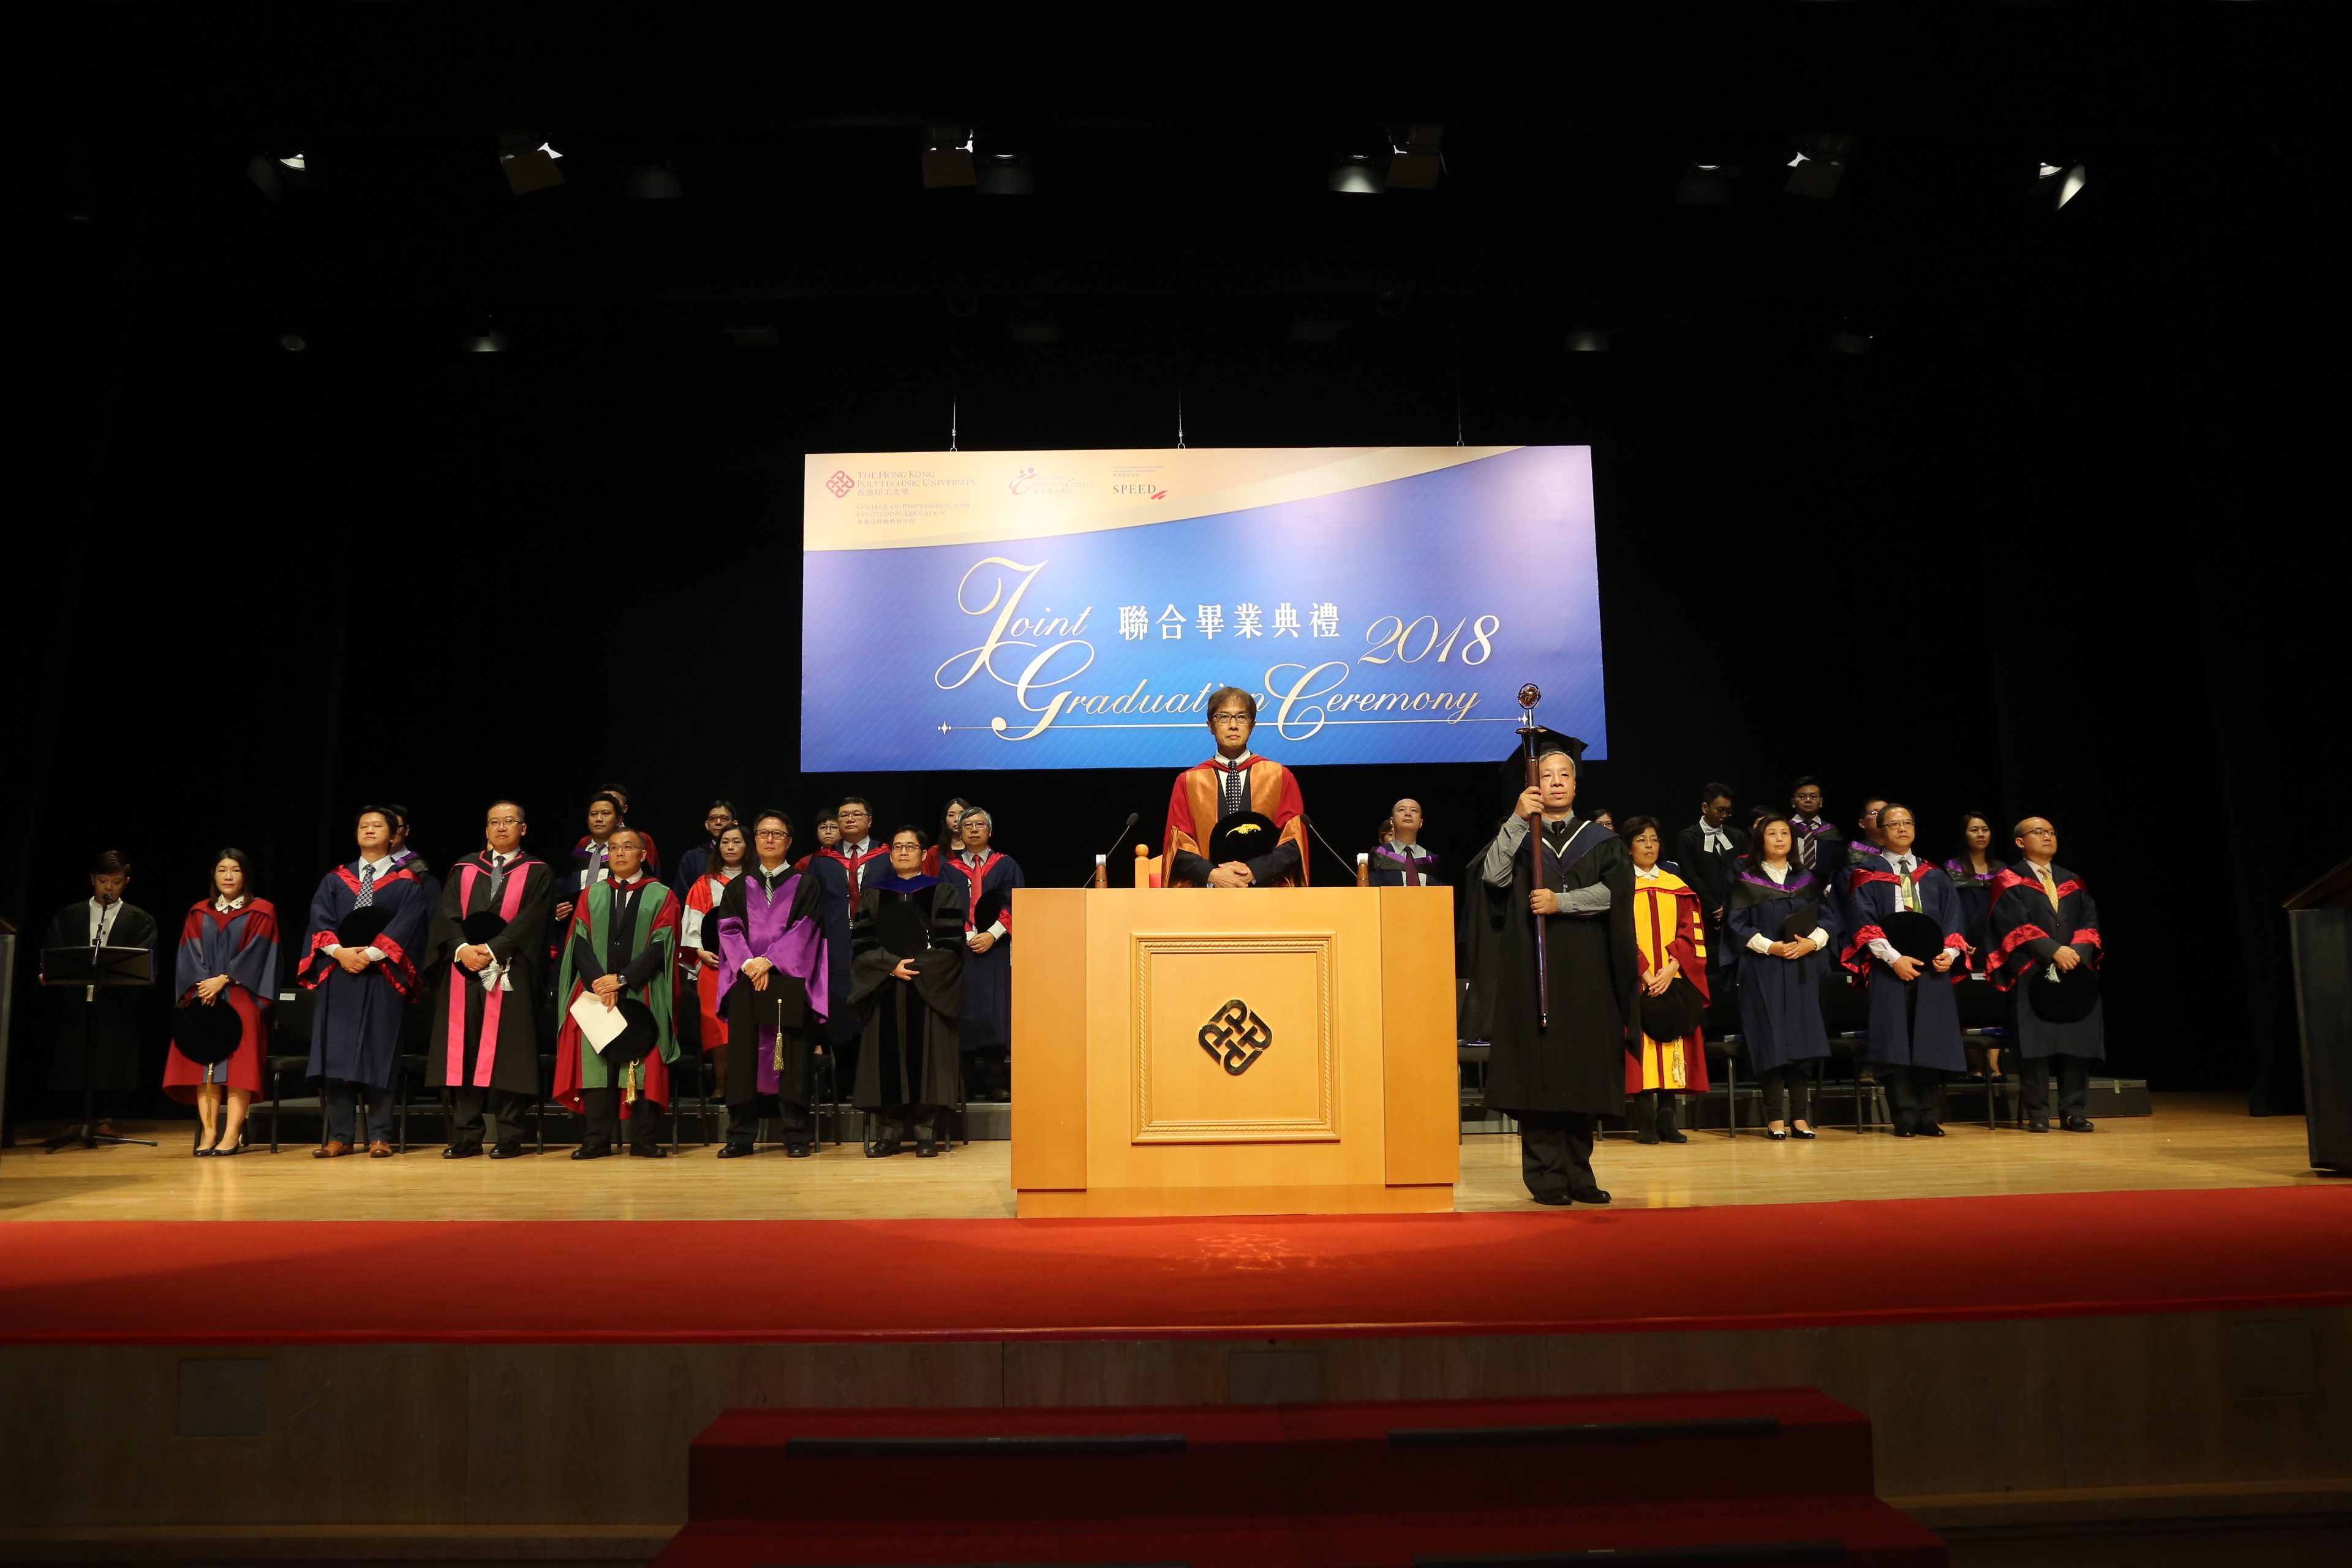 Dean of CPCE, Prof. Peter Yuen (centre) officiates at the Graduation Ceremony with members of College Board and other senior academic staff.